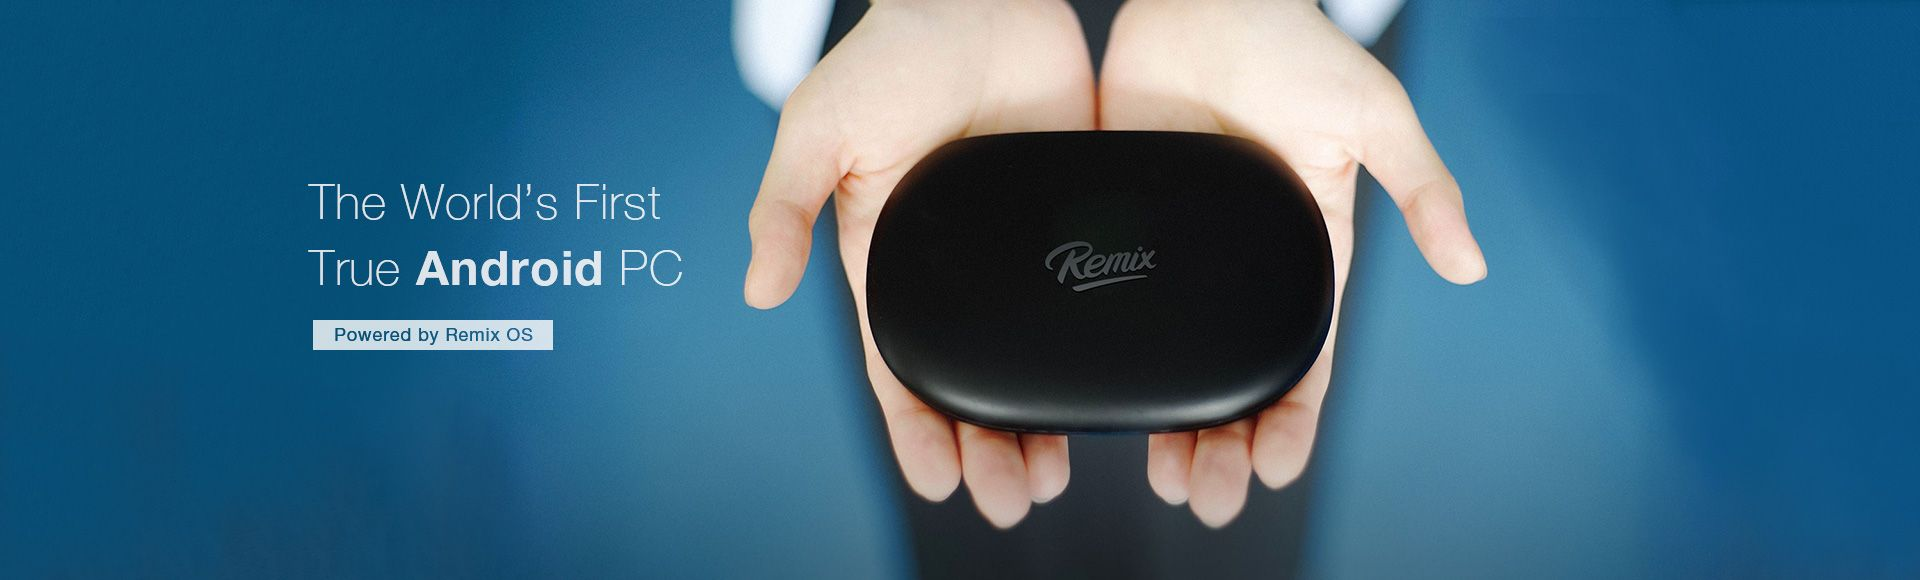 Remix Mini Android PC - The world's first true Android PC